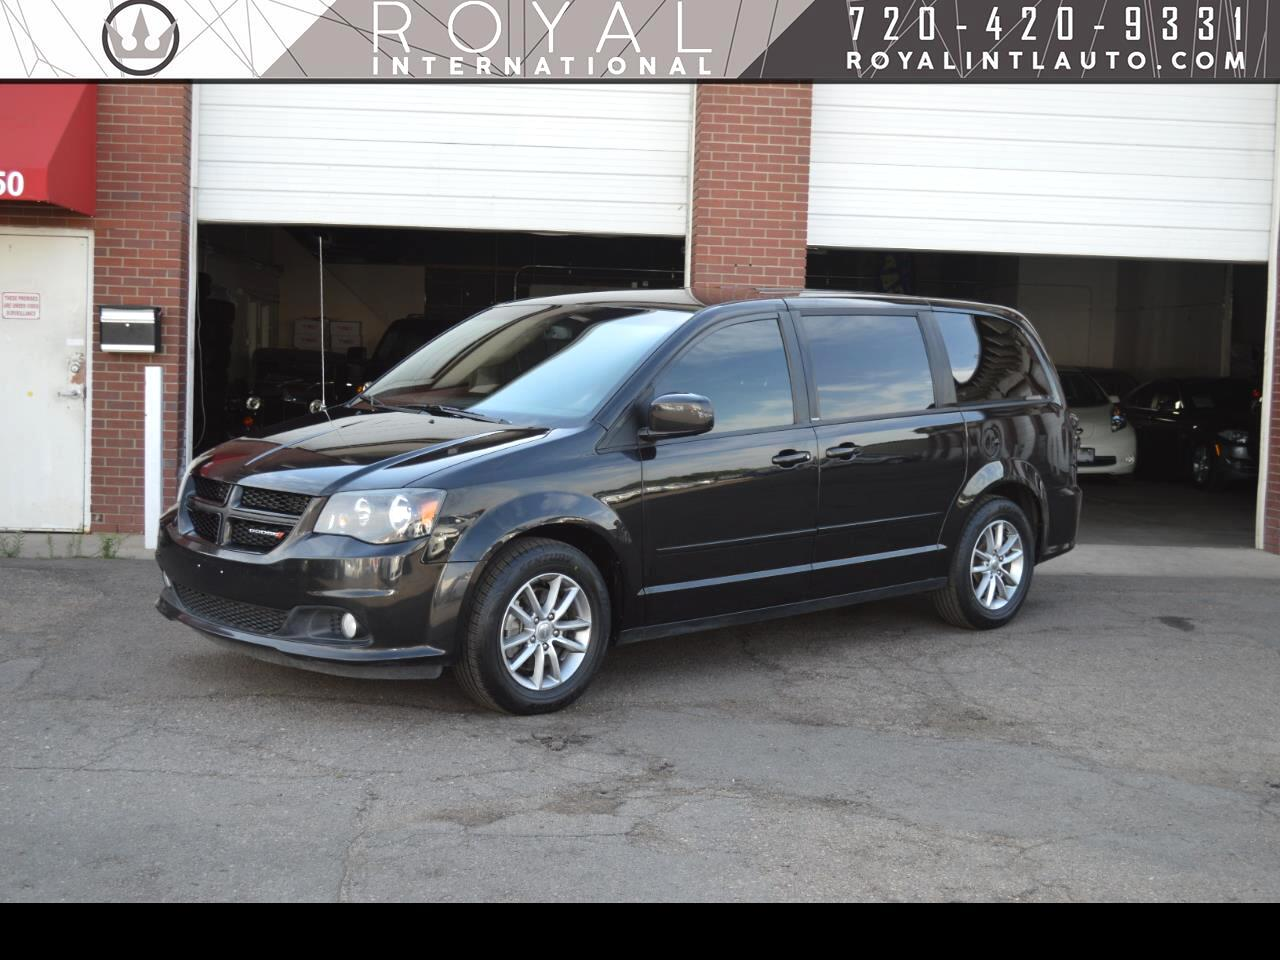 Dodge Grand Caravan 4dr Wgn R/T 2014